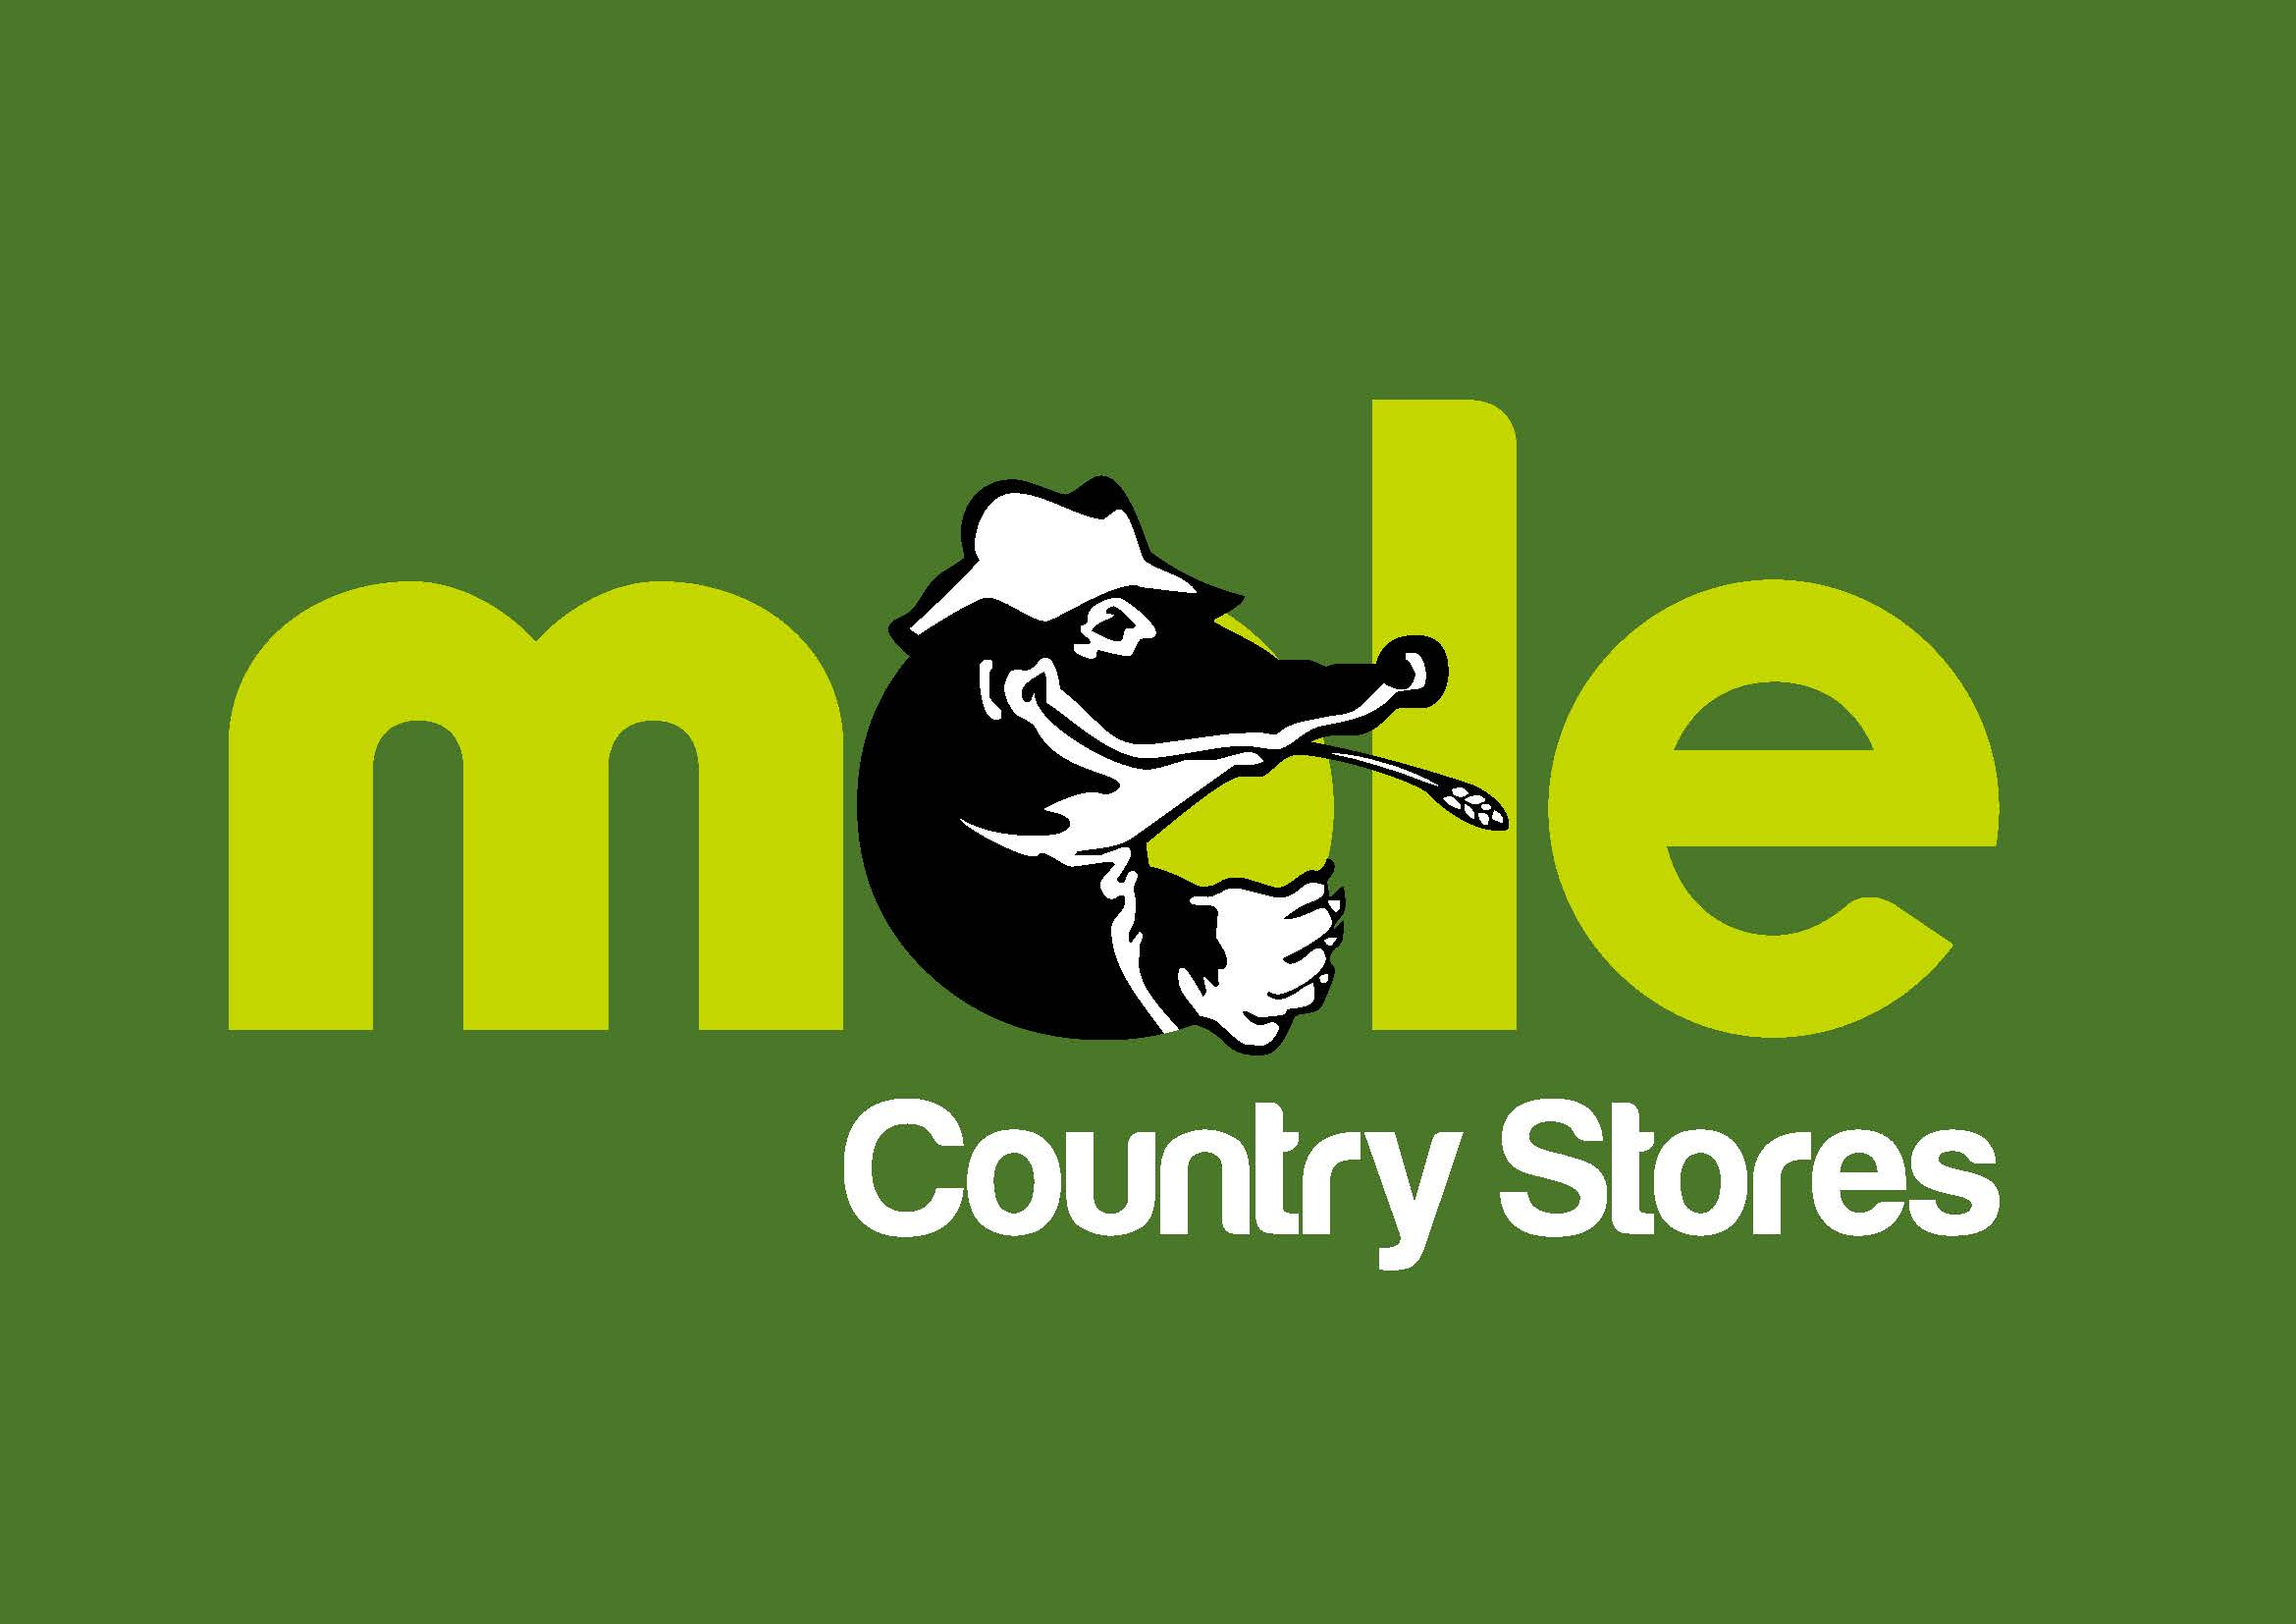 Mole Country Stores Newport, Isle of Wight